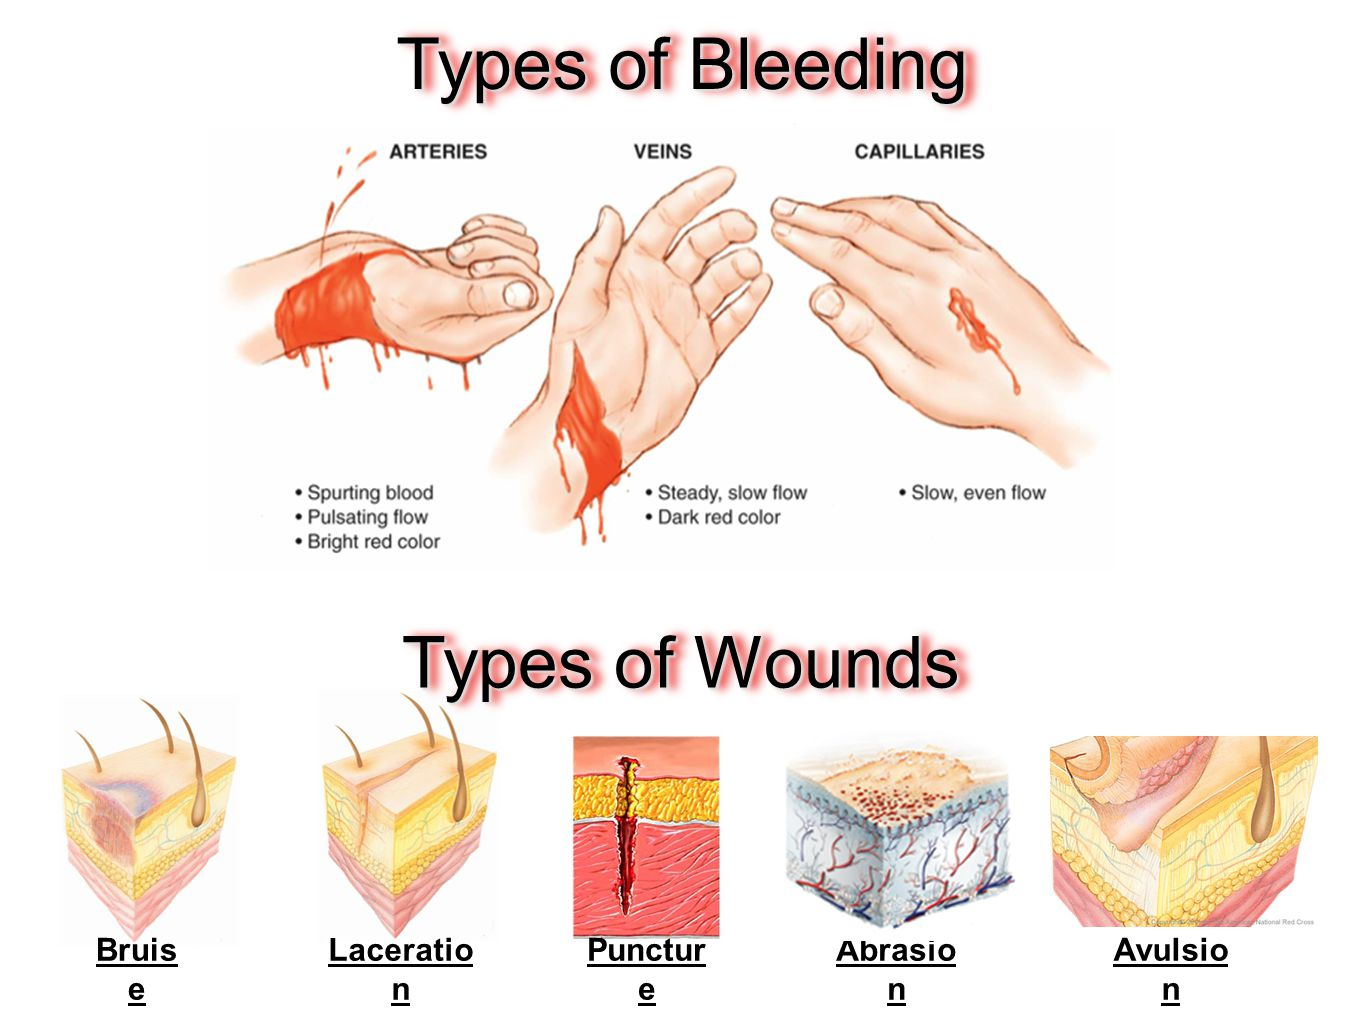 Types of Bleeding Types of Wounds Bruise Laceration Puncture Abrasion